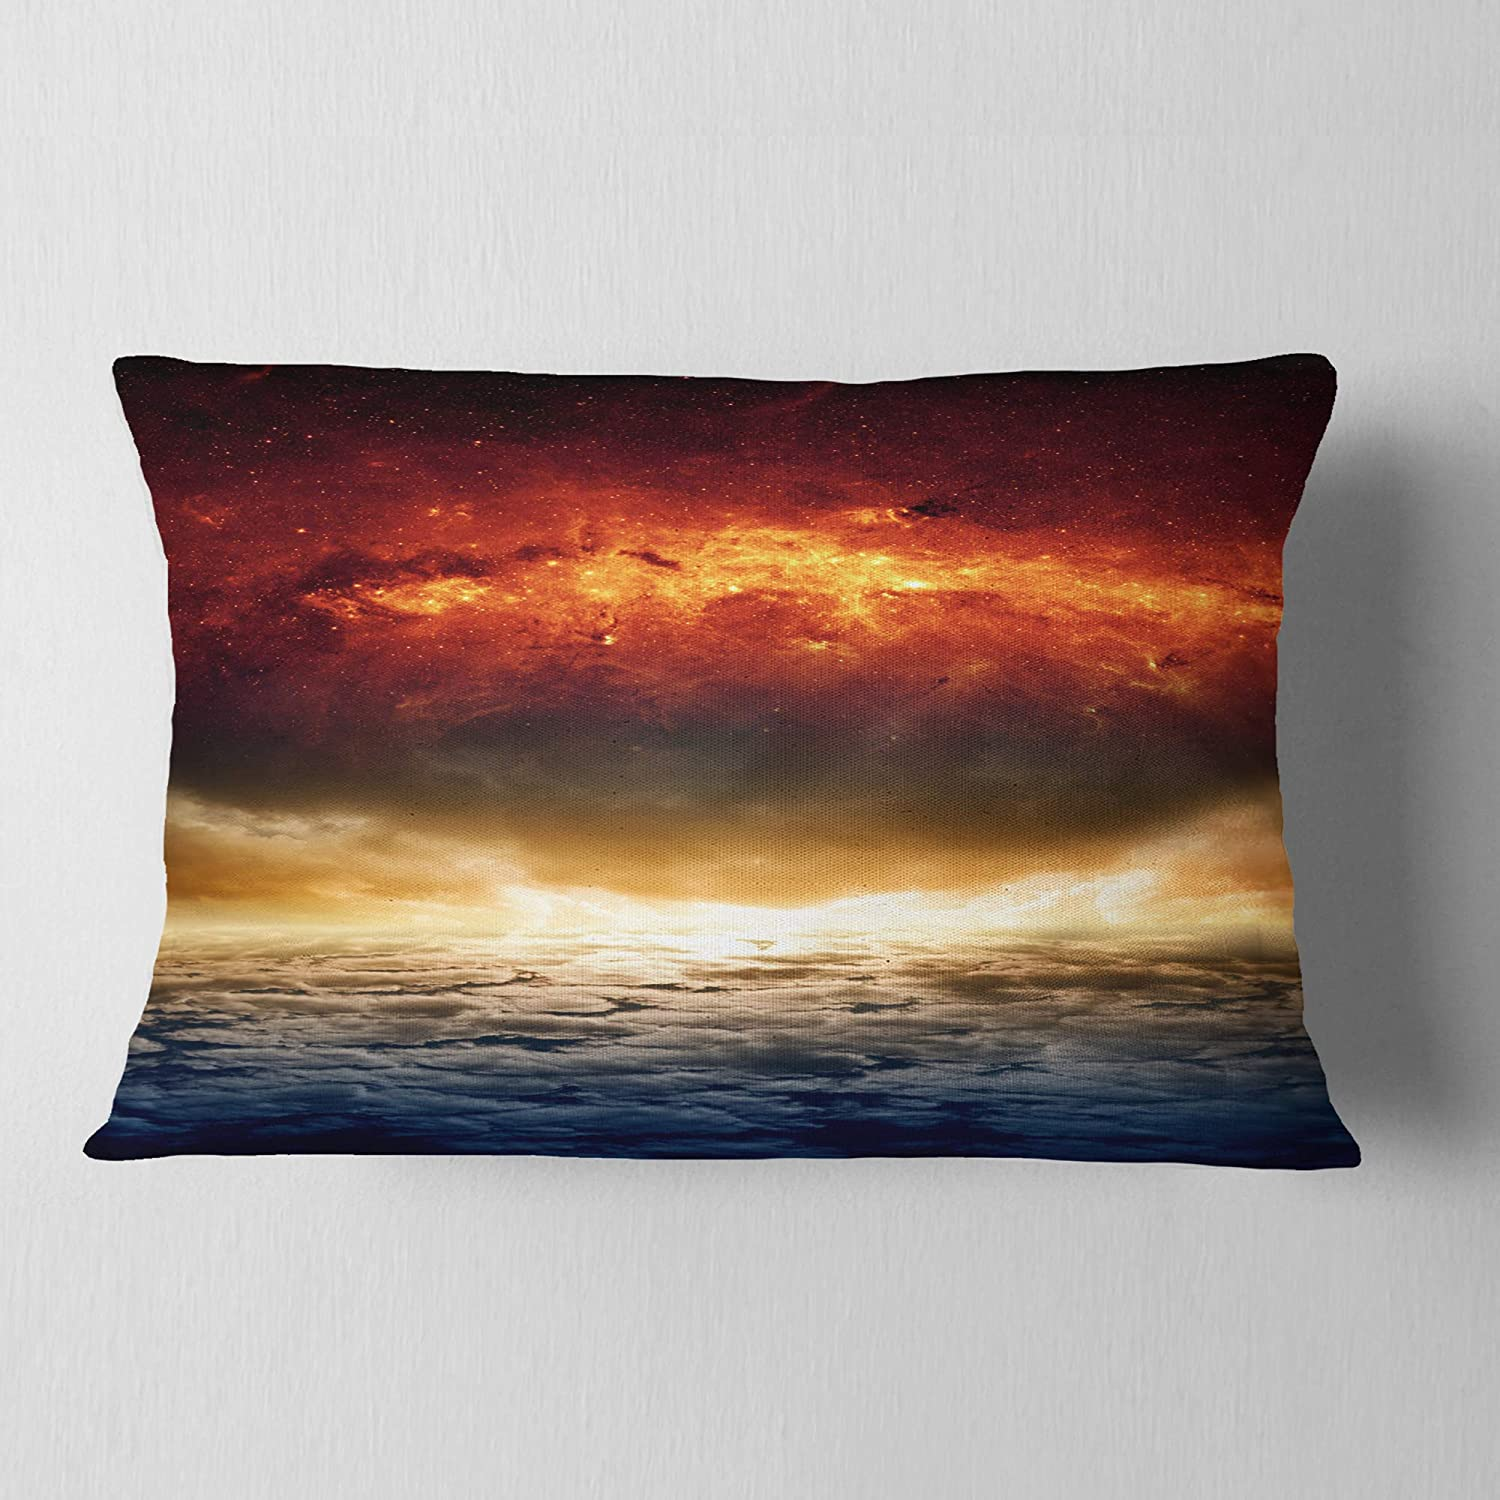 Designart CU8071-12-20 Dramatic Apocalyptic Design Spacescape Lumbar Cushion Cover for Living Room Sofa Throw Pillow 12 in in x 20 in Insert Printed On Both Side